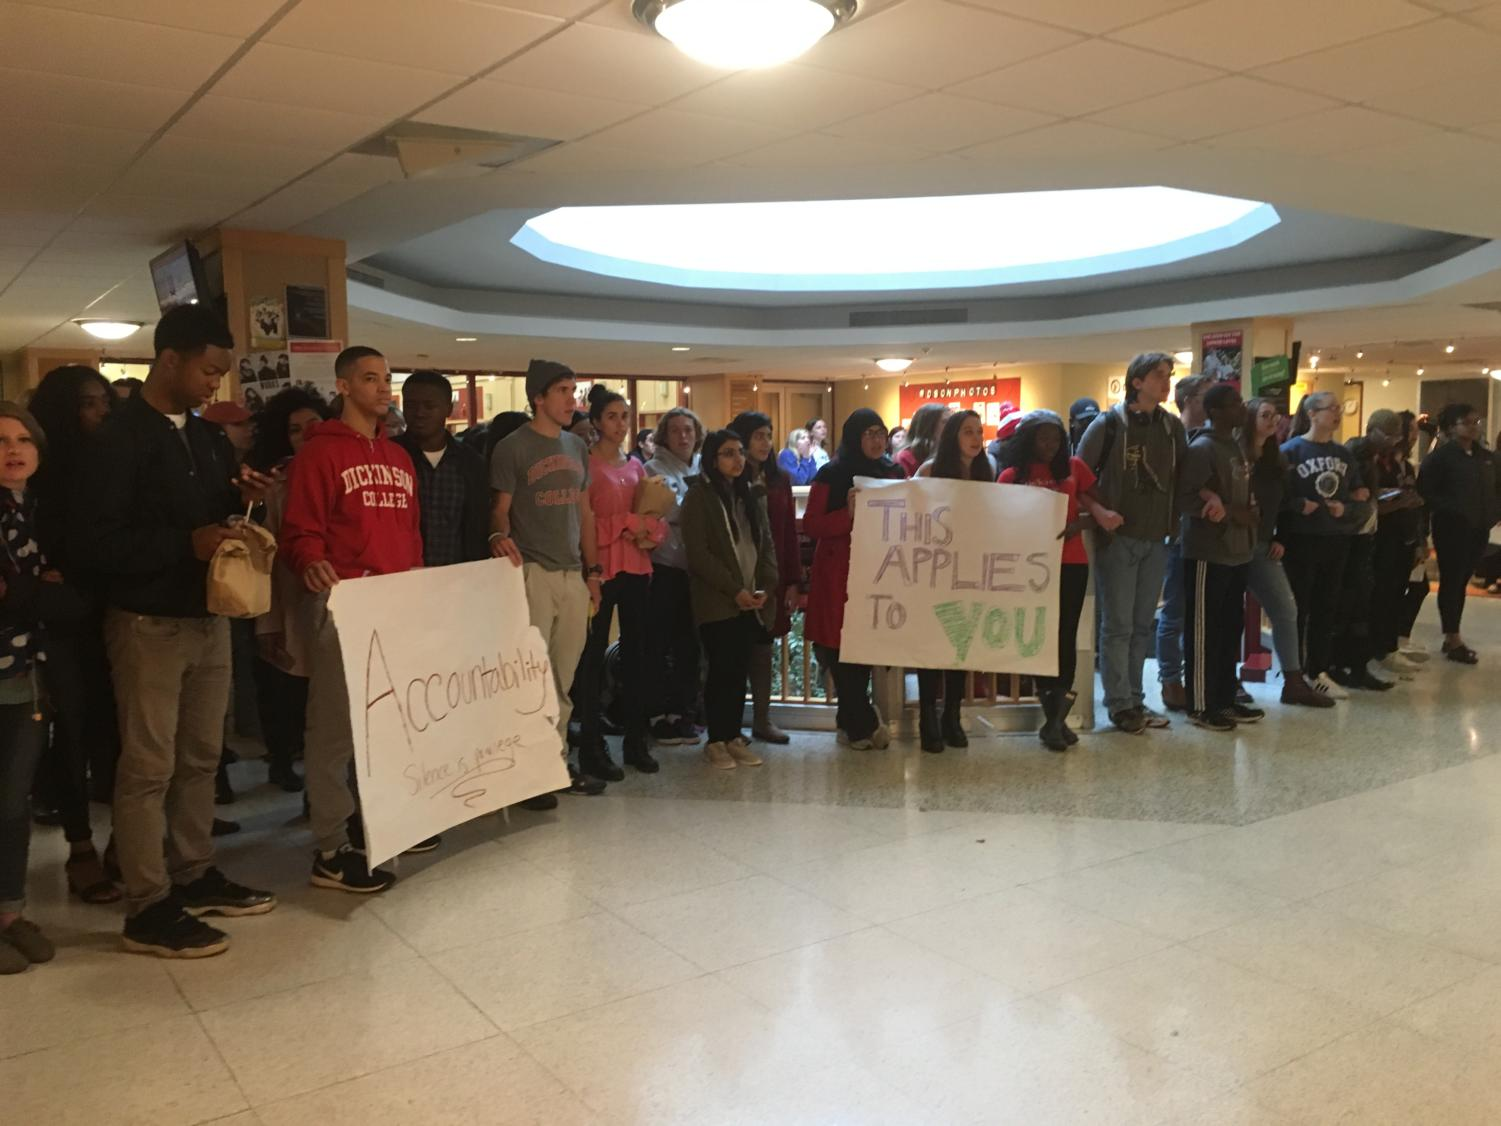 Students held signs and linked arms outside of the Tuesday, Nov. 7 faculty meeting from 12 p.m. to 12:40 p.m., then moved the protest to the HUB stairwell.